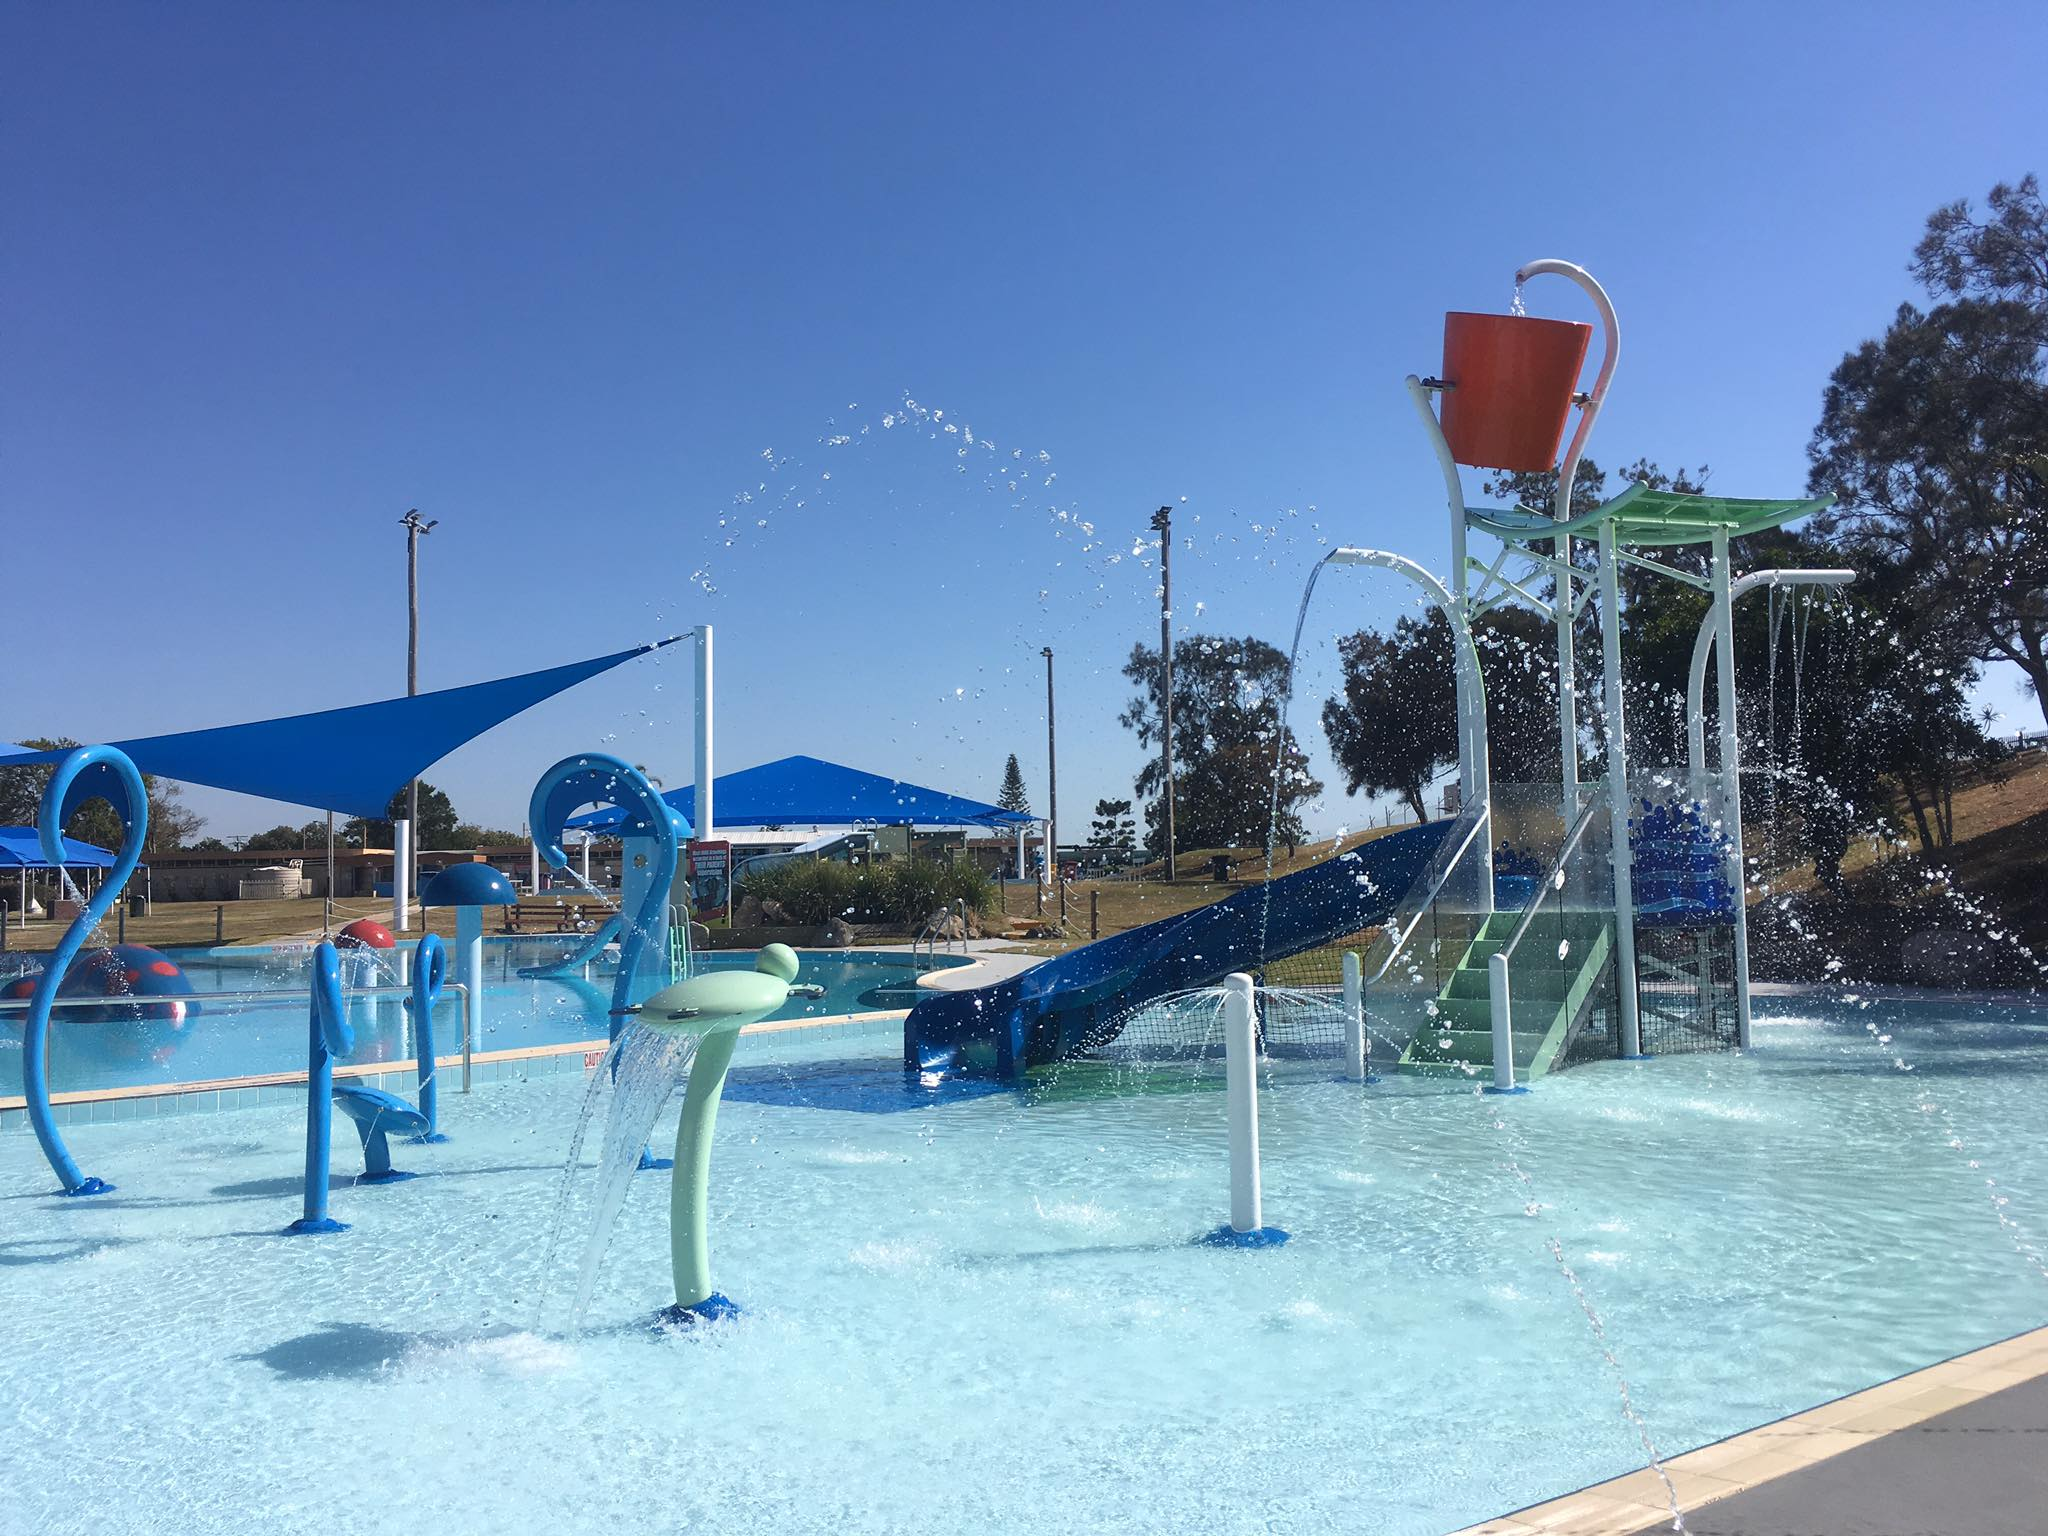 Open for School Holidays - $500k Aquatic Playground Upgrade - Sandgate Aquatic Centre